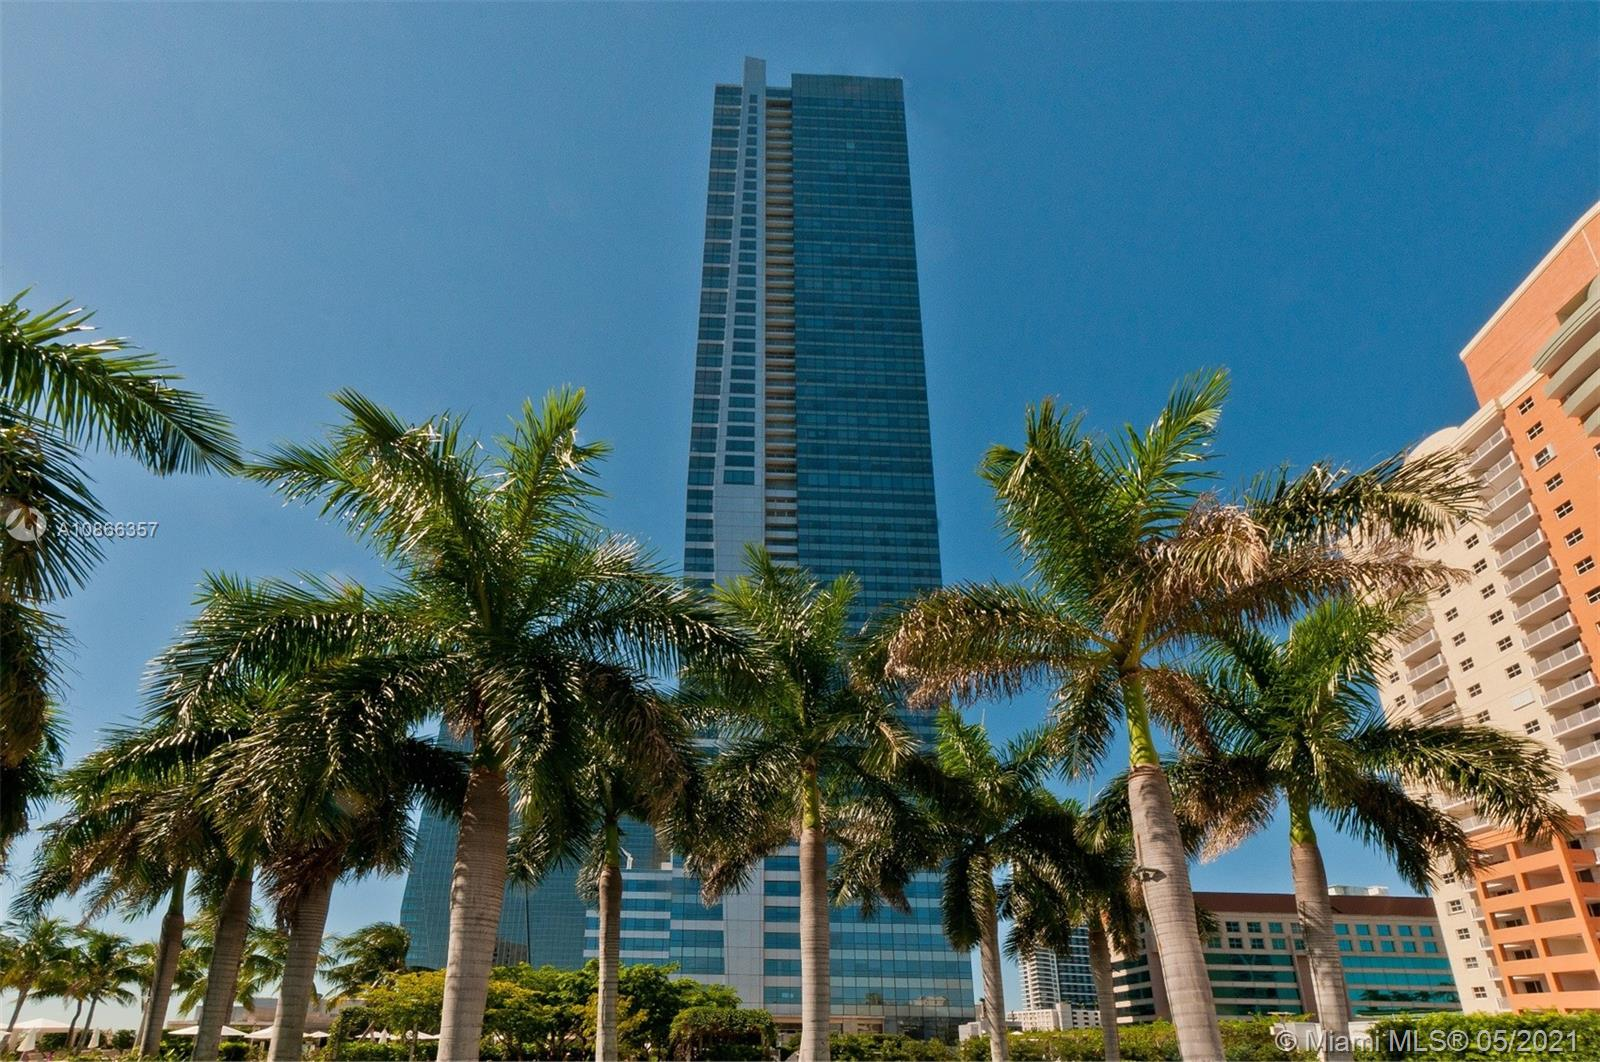 STUNNING PENTHOUSE ON THE 69TH FLOOR AT PRESTIGIOUS FOUR SEASONS RESIDENCES MIAMI. THIS MASTERPIECE OFFERS 2,139 SQ.FT. OF LIVING AREA, 2 BEDROOMS & 2½ UPGRADED BATHROOMS, STONE FLOORS, HIGH CEILINGS, ELECTRIC BLINDS, AMAZING UPGRADED KITCHEN WITH PANTRY AND TOP GRADE APPLIANCES, SEPARATE LAUNDRY ROOM, EXQUISITE DETAILS AND FINISHES THROUGHOUT. DISCOVER THE BEST AND UNOBSTRUCTED BIRD'S EYE VIEWS OF THE ATLANTIC OCEAN, BISCAYNE BAY, SOUTH BEACH, MIAMI BEACH AND THE DRAMATIC MIAMI SKYLINE AS FAR AS THE EYE CAN SEE!!! ENJOY OUTSTANDING 5 STAR AMENITIES, ROOM SERVICE, 24HS CONCIERGE- VALET- SECURITY, 50,000 SQ.FT. GYM & SPA, OWNERS' LOUNGE AND MORE!!! SEE LINK TO 3D VIRTUAL TOUR IN BROKER REMARKS.